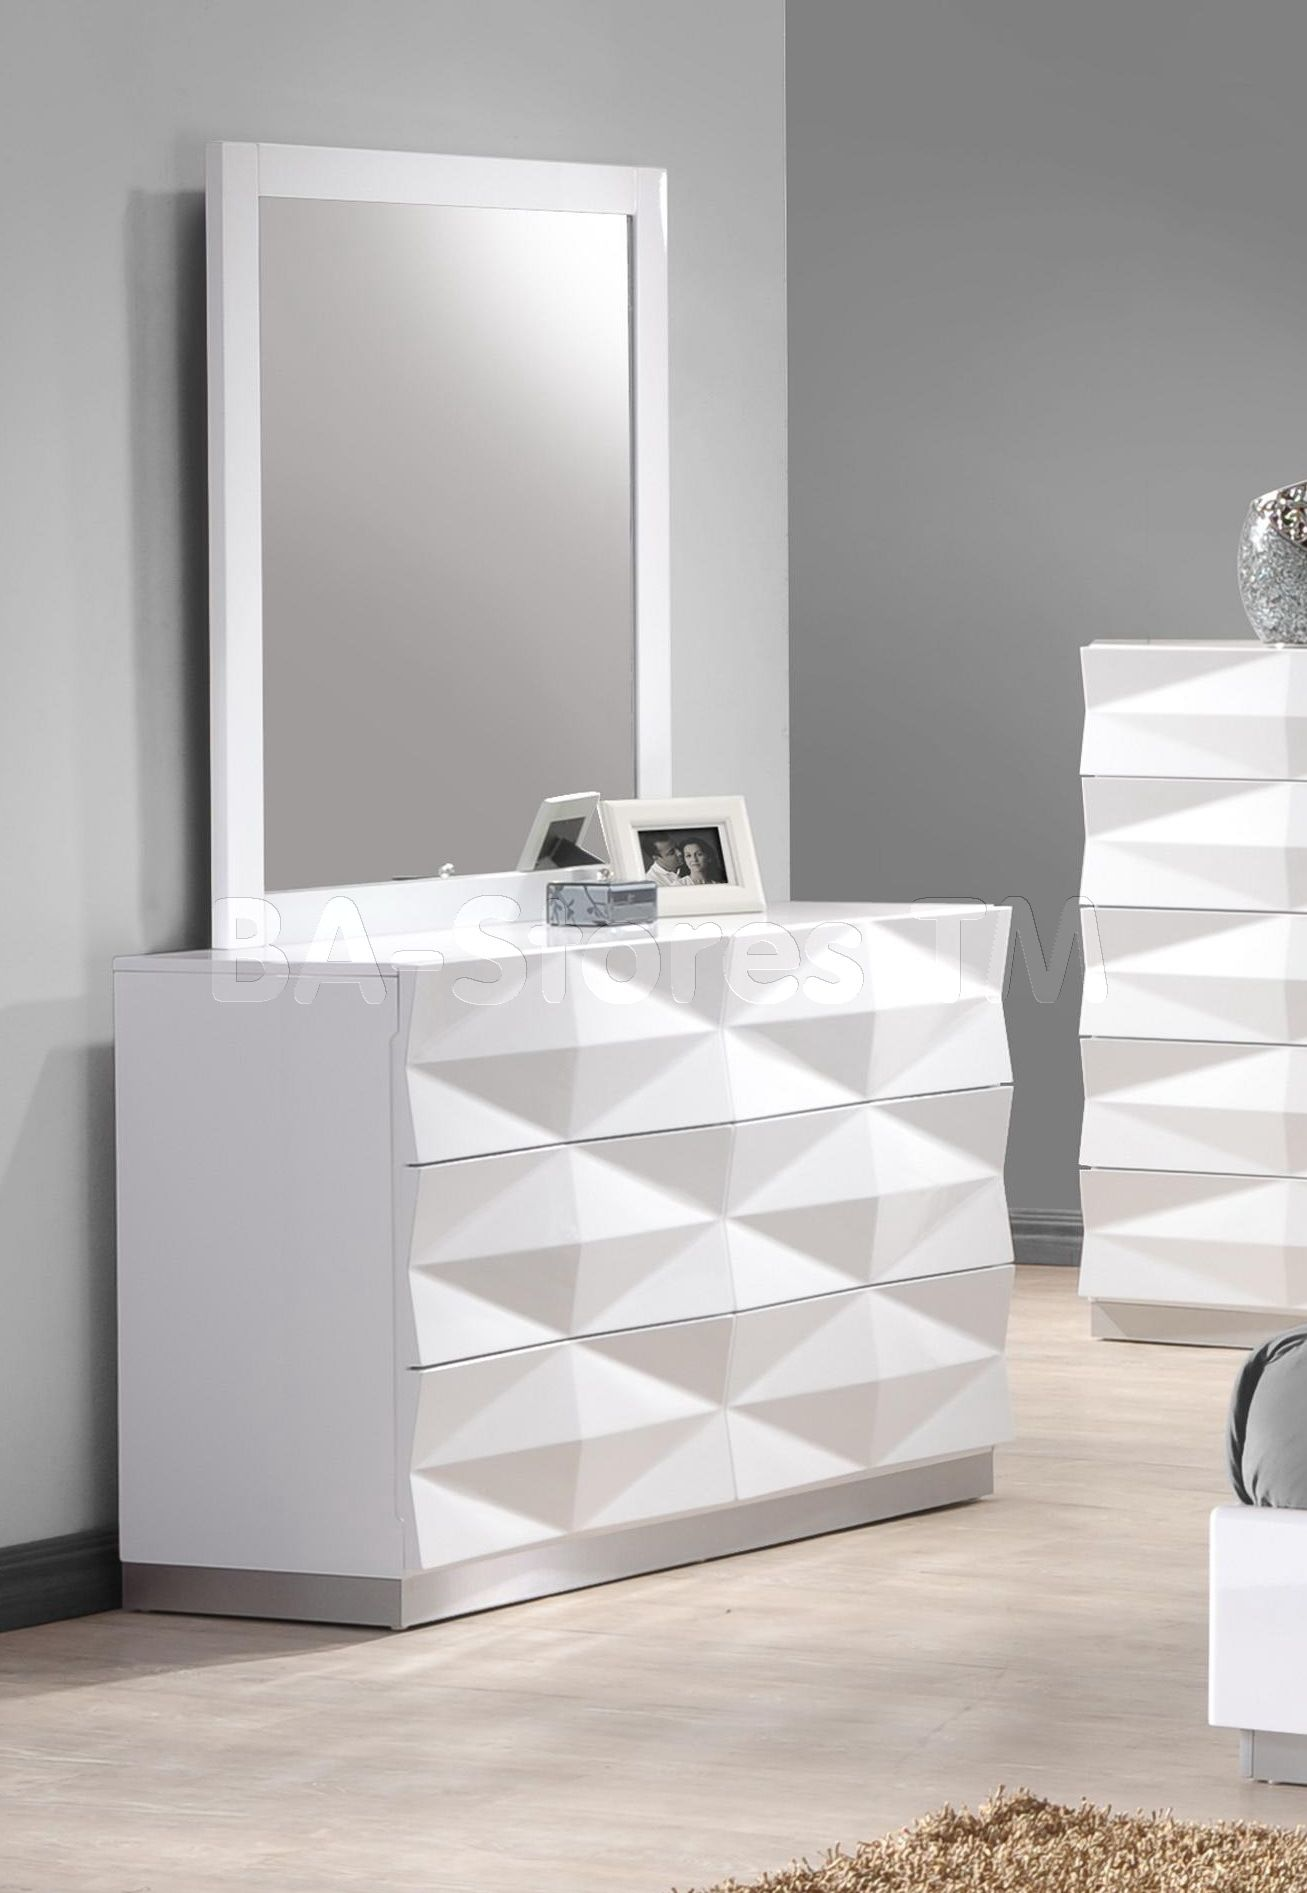 Verona Unique 3d Surfaces Dresser And Mirror In White Lacquered Bedroom Dressers